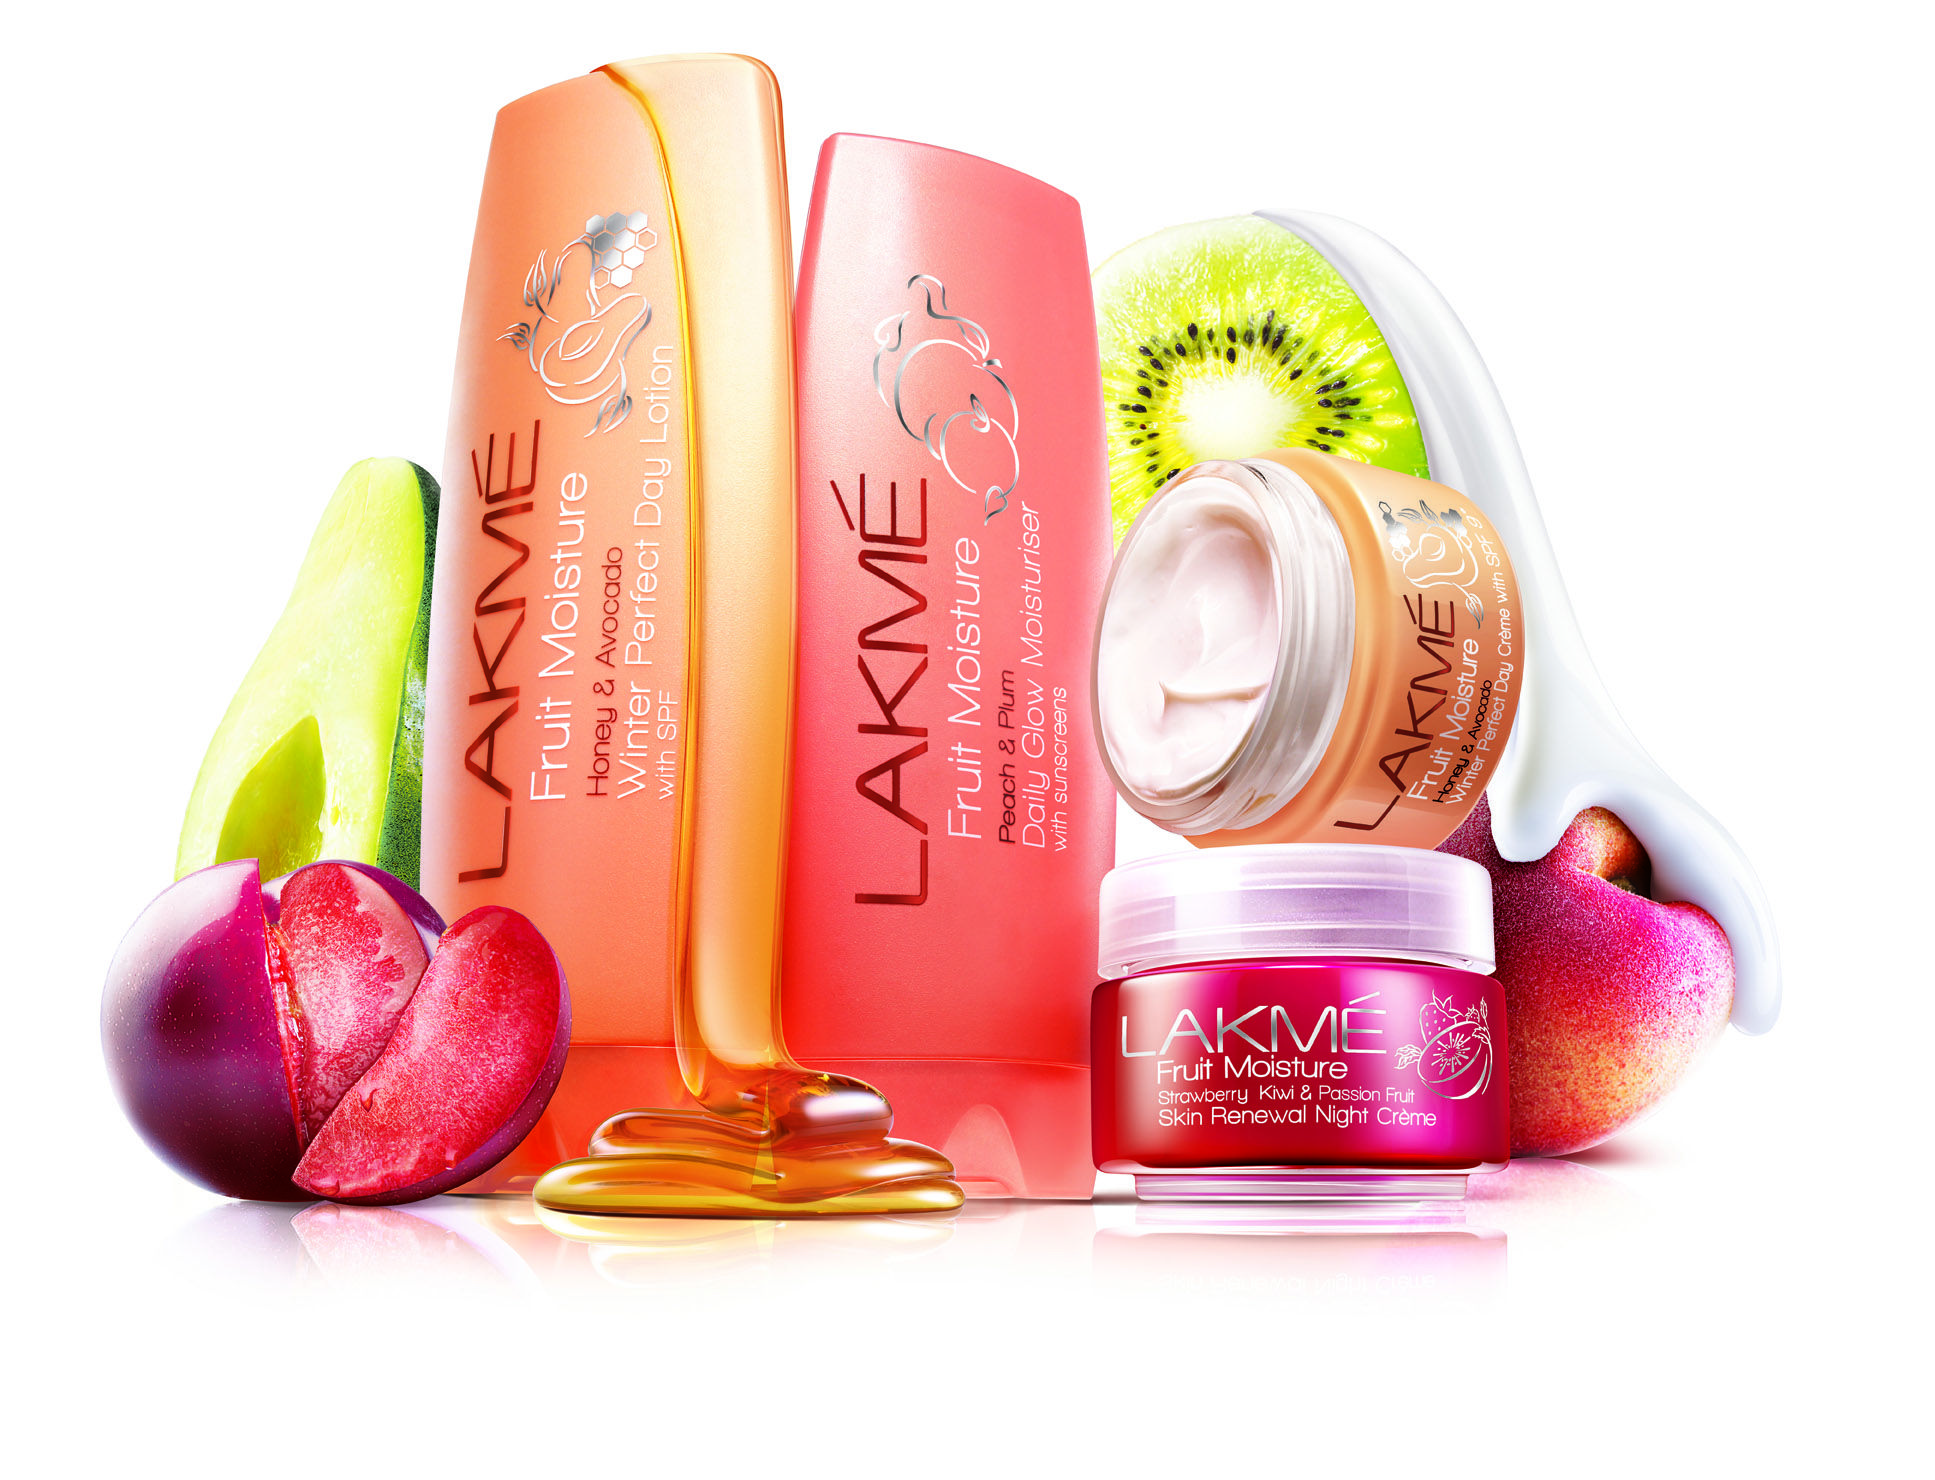 lakme cosmetics leader in india Lakme products list with price in india (makeup & skincare) shweta may 22, 2016 65 comments if you are searching for the lakme products list with price , then here is the list of lakme india cosmetic products with updated price.